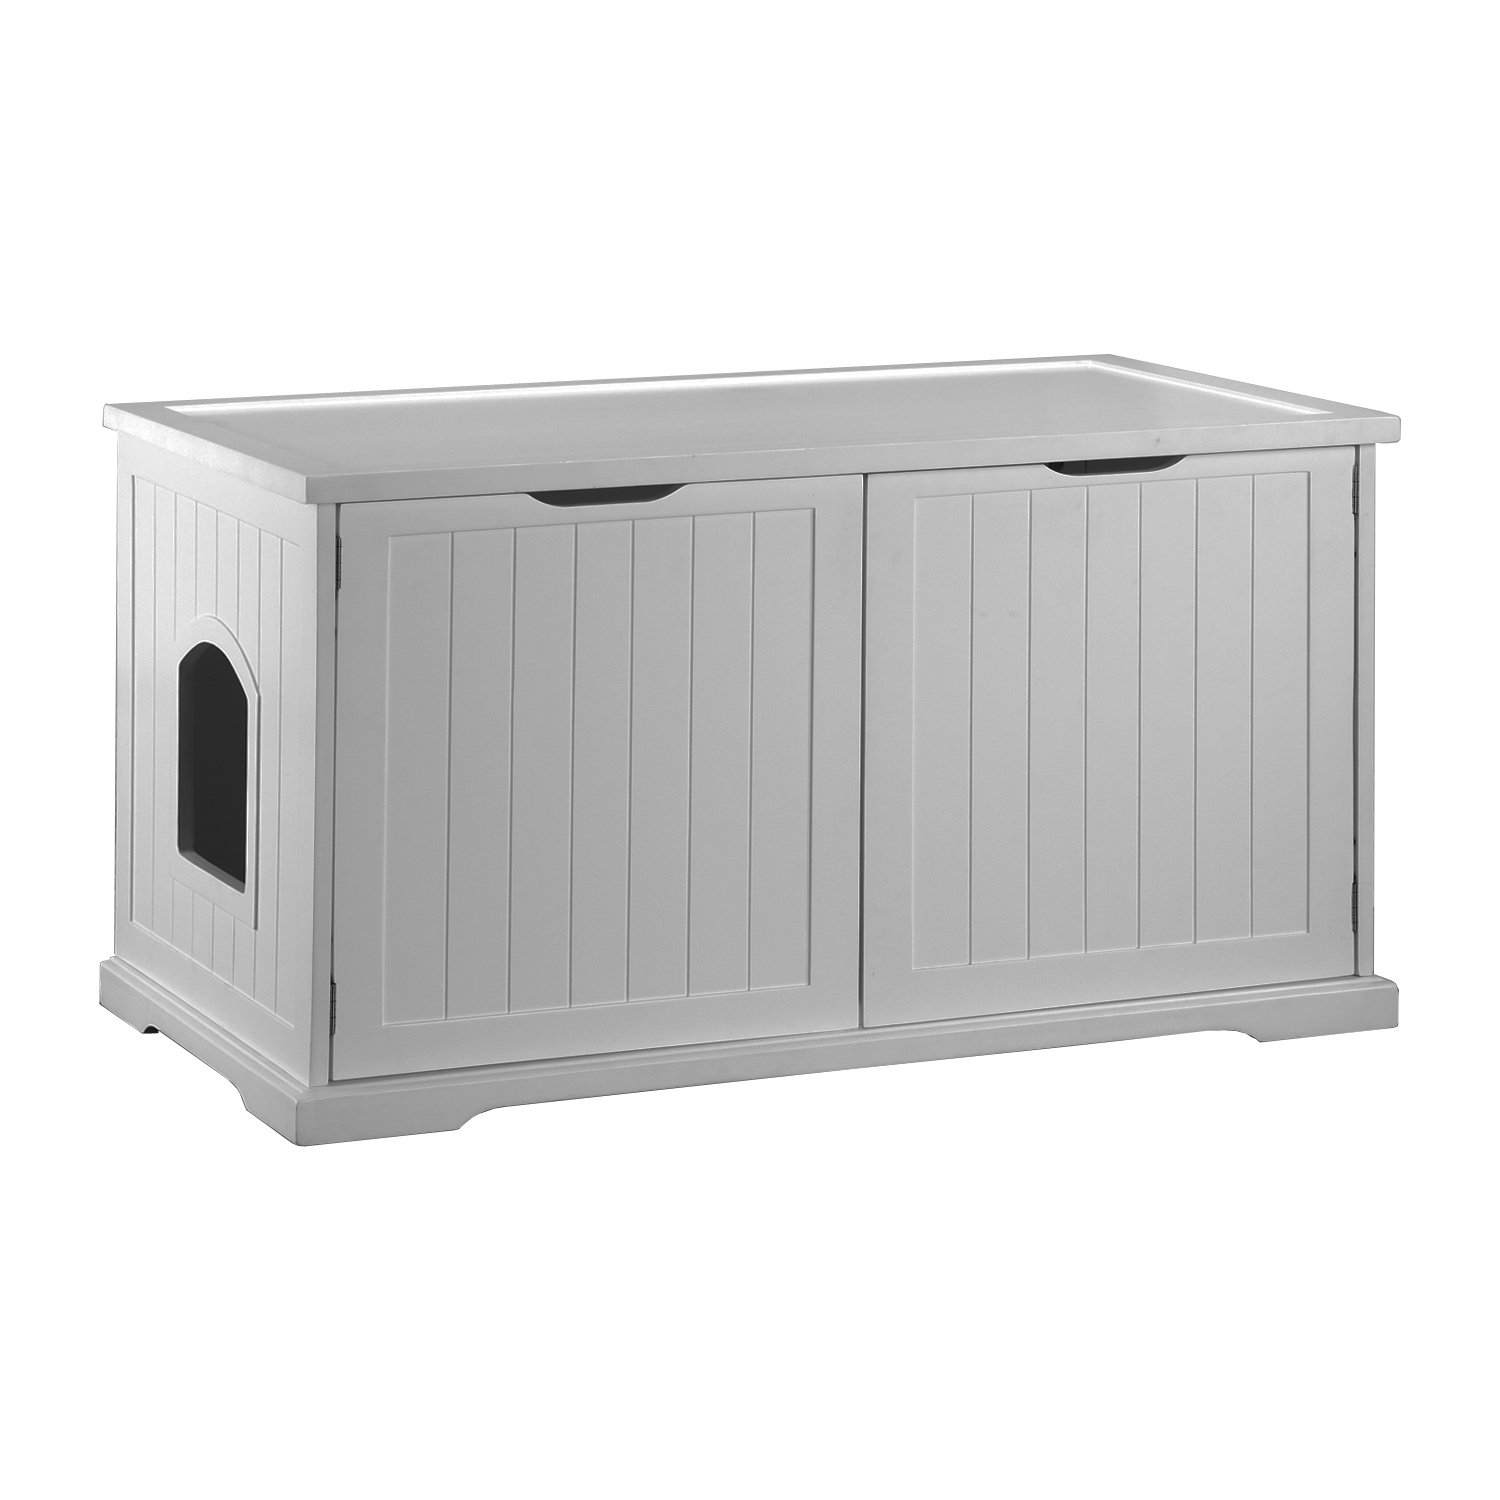 Merry Products Cat Washroom Bench, White by Merry Pet